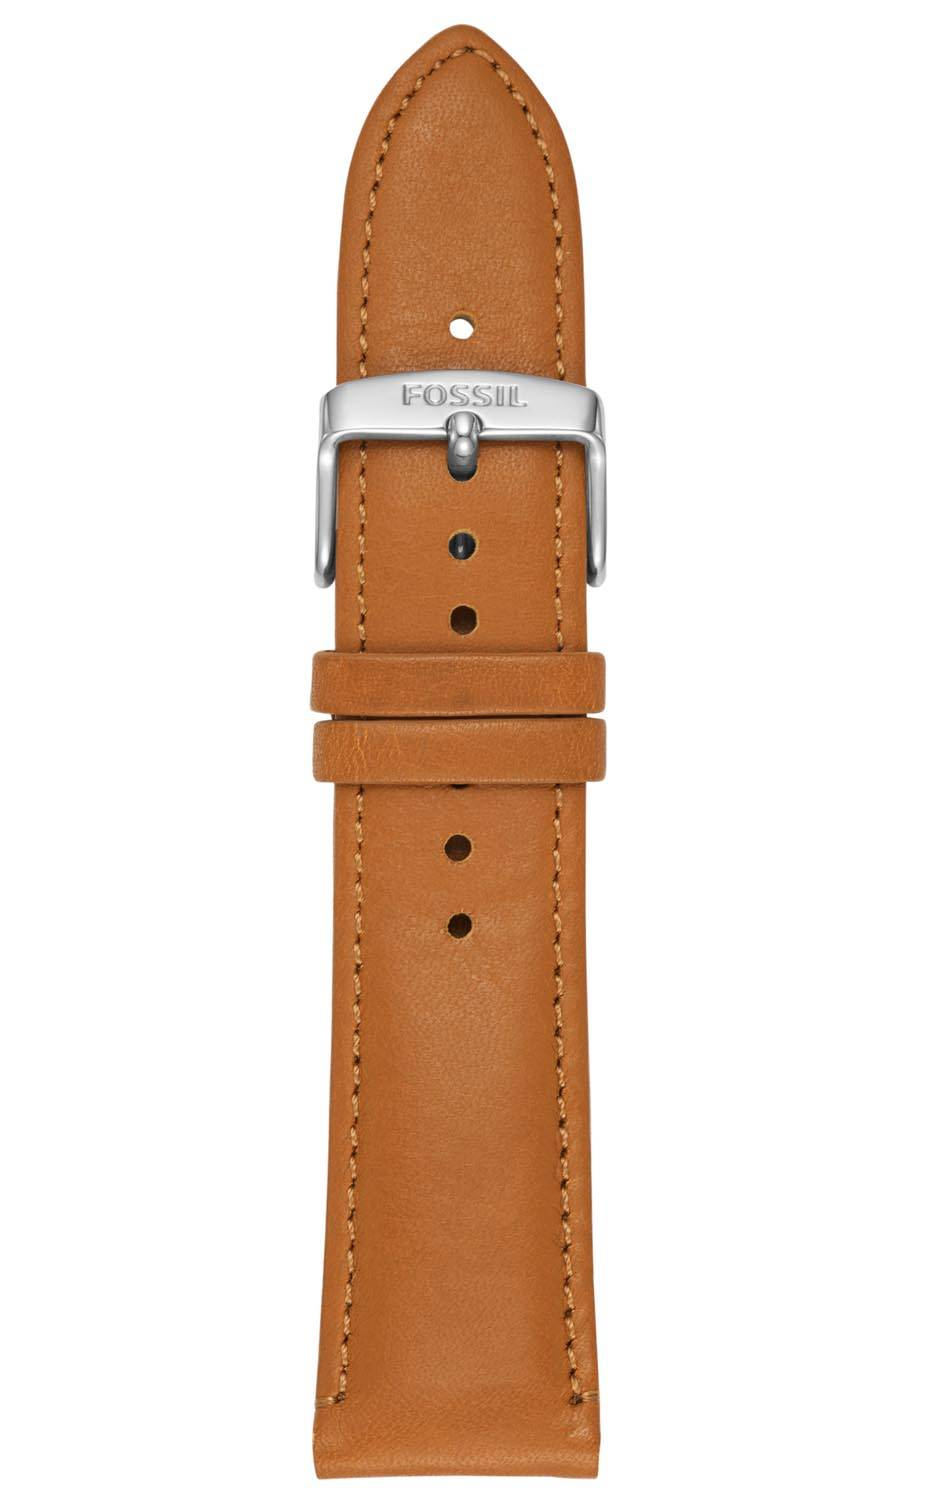 Fossil 22mm Brown Leather Strap S221344